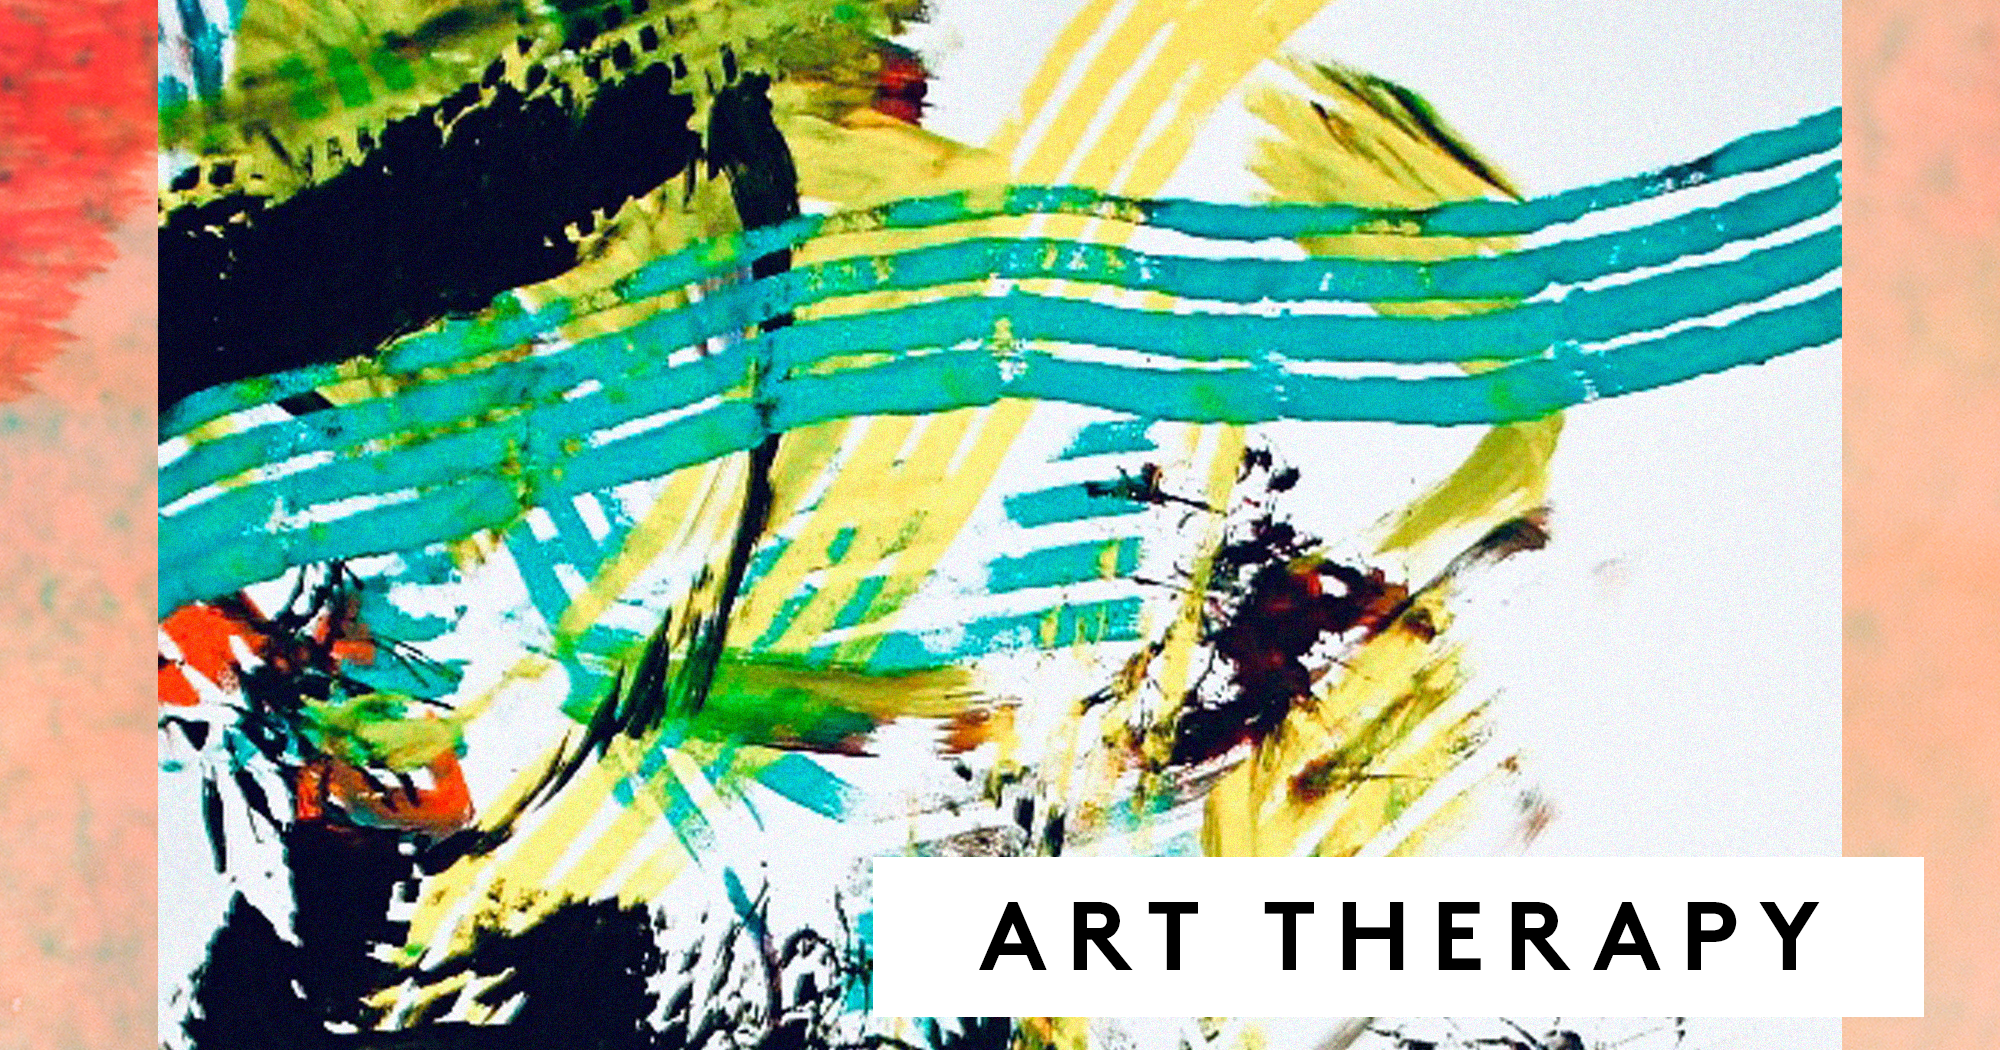 Why Art Therapy & Creating Stuff Reduces Stress